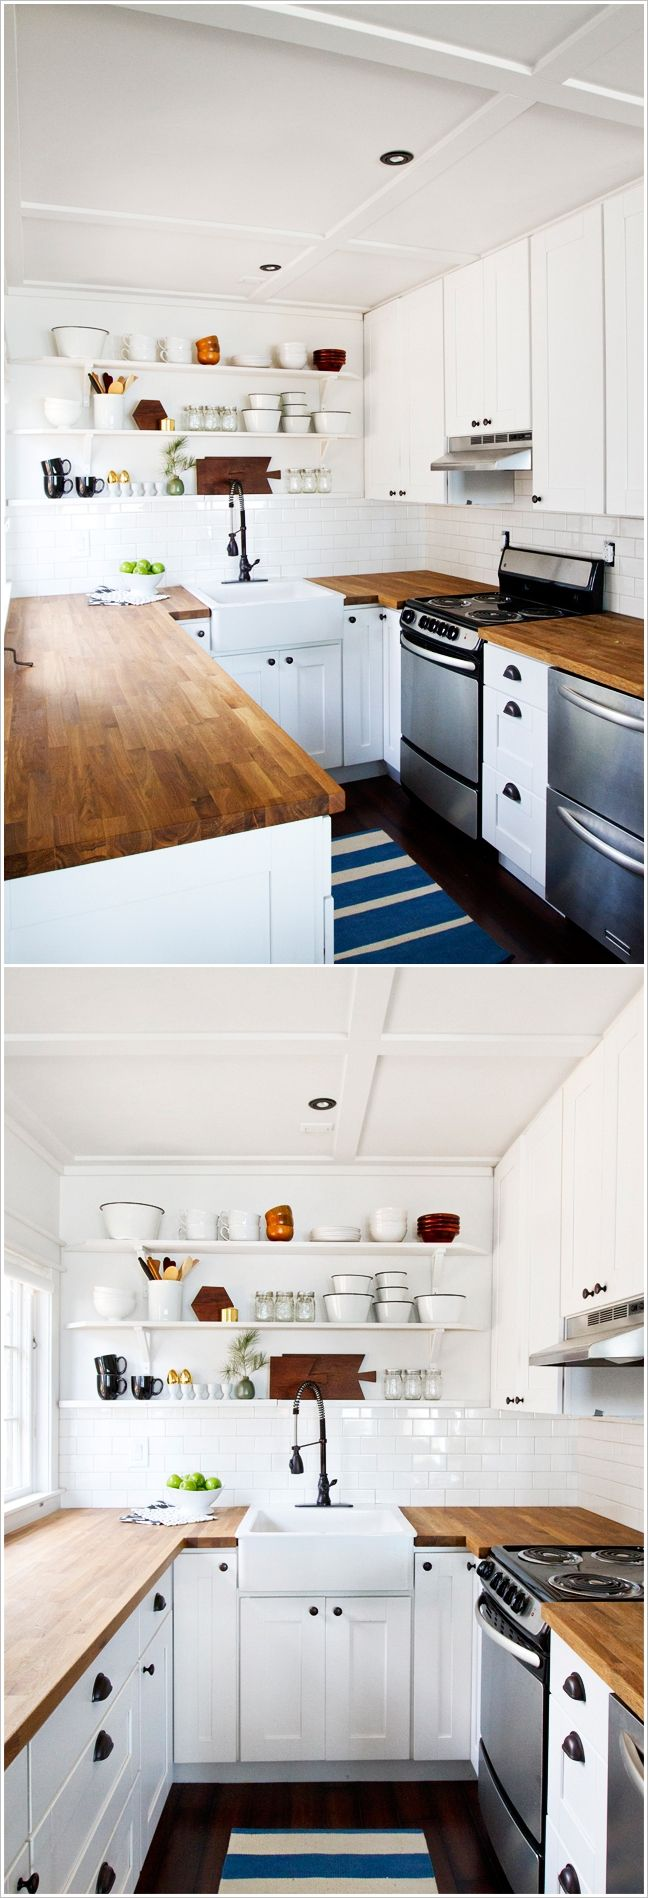 15 Fabulous U-Shaped Kitchen Designs That Will Inspire You http://plx.io/x8C